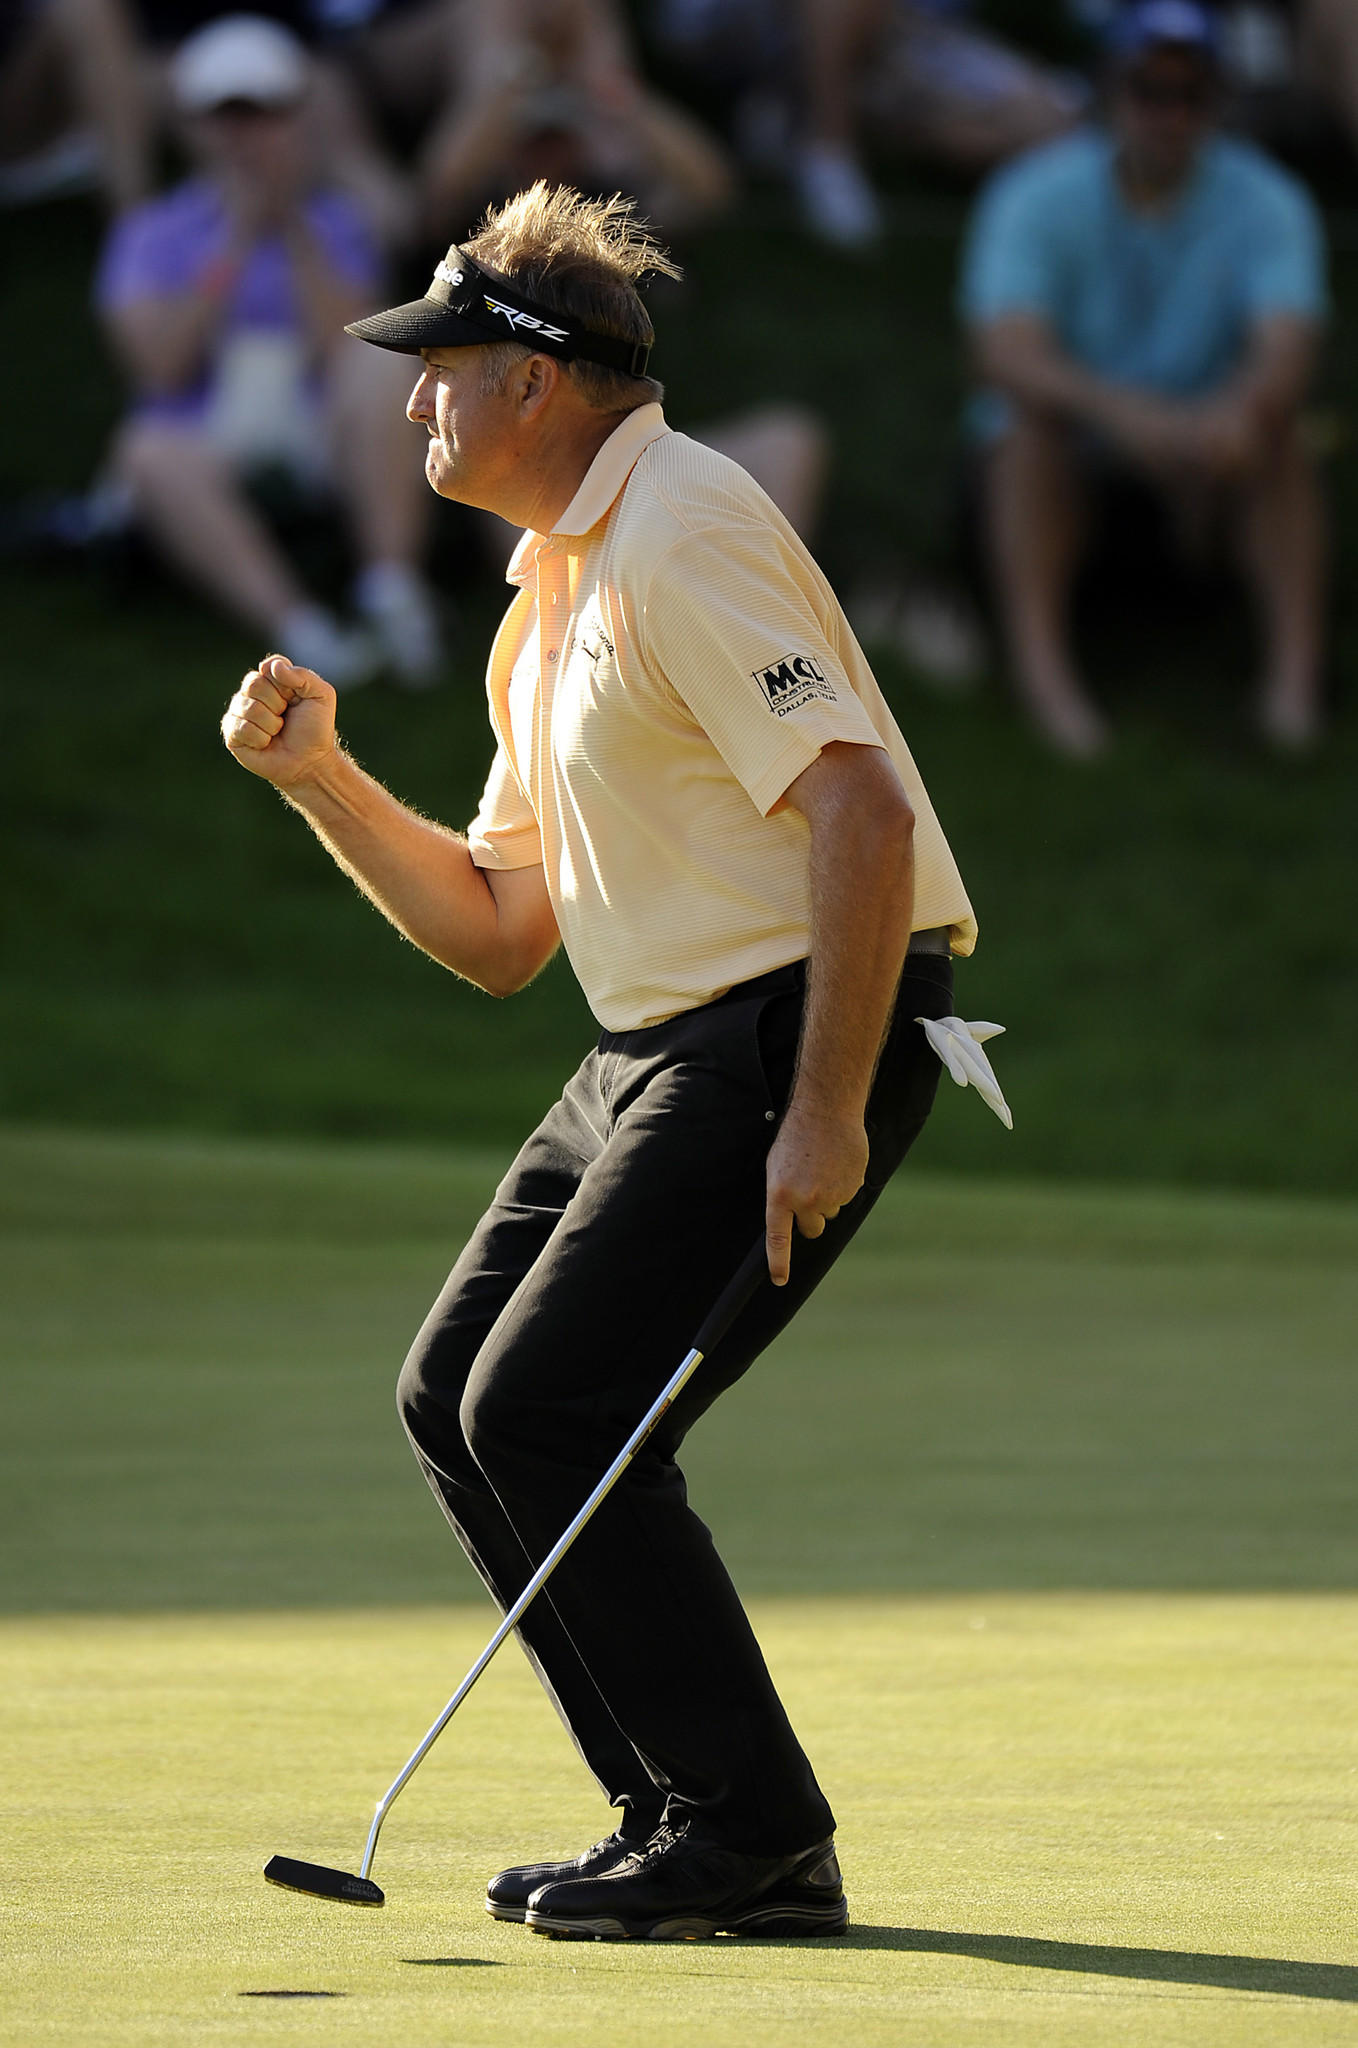 """Cromwell, CT 6/21/13 Ken Duke pumps his fist after sinking his winning putt from 2' 9"""" on the 18th green during the second playoff hole with Chris Stroud during the Final round of the 2013 Travelers Championship at the TPC River Highlands in Cromwell Sunday. Photo by JOHN WOIKE 